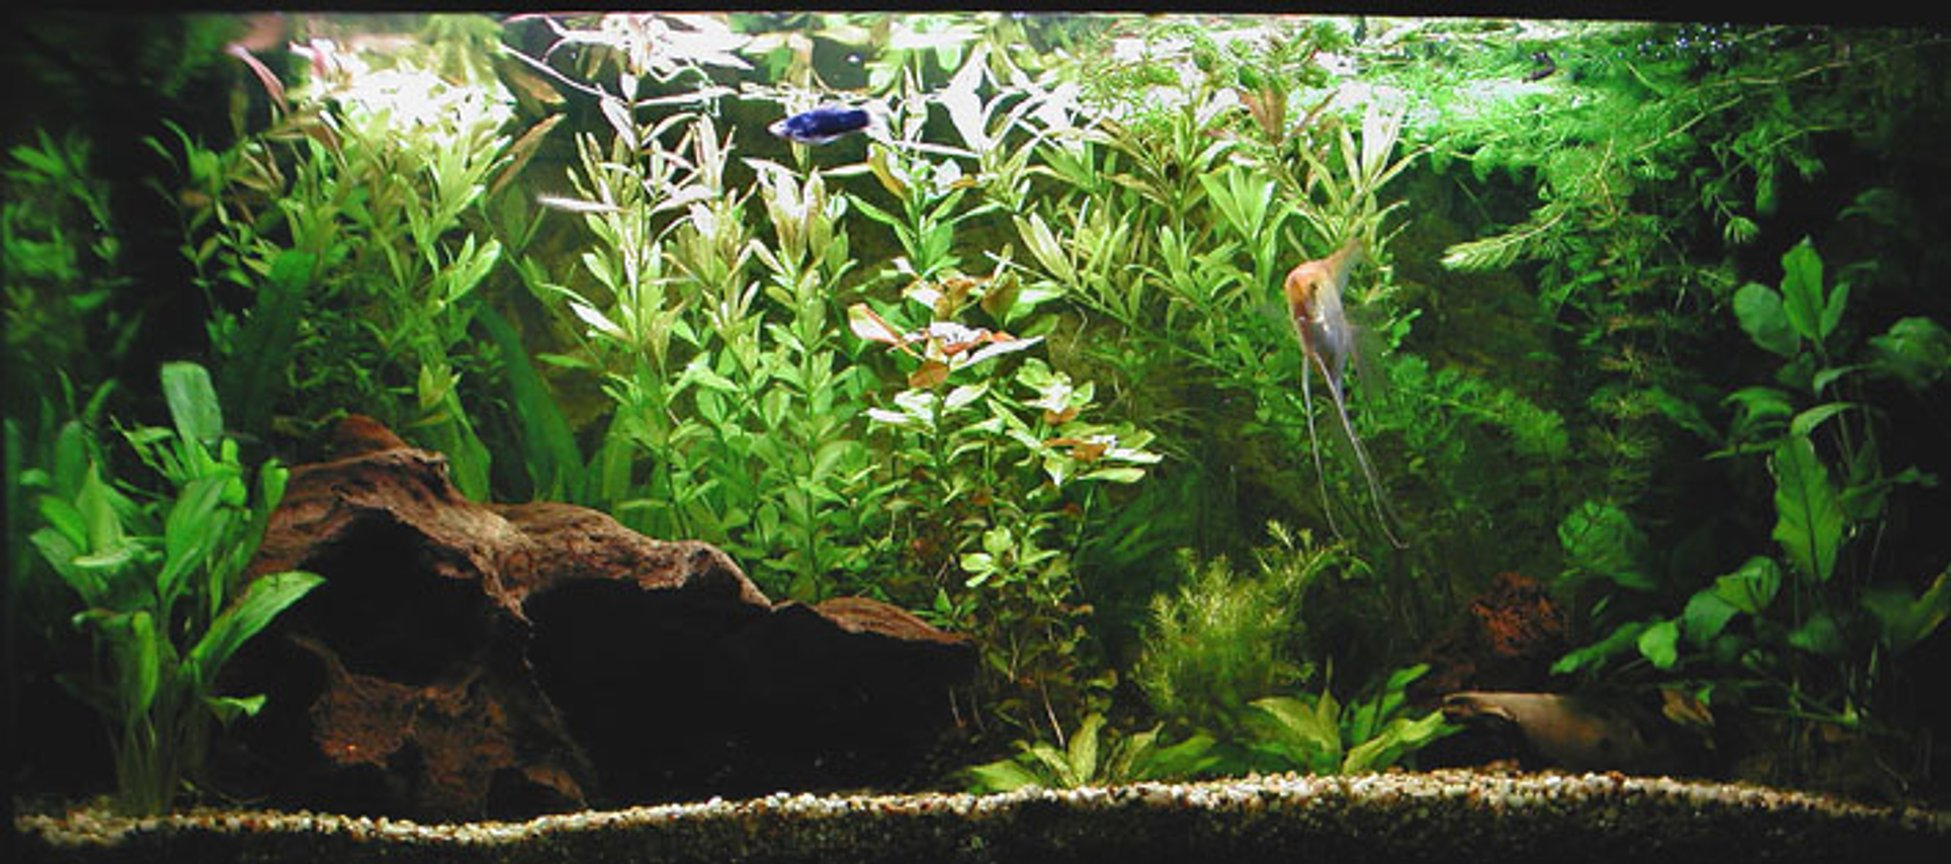 planted tank (mostly live plants and fish) - only 2 months in aqualand